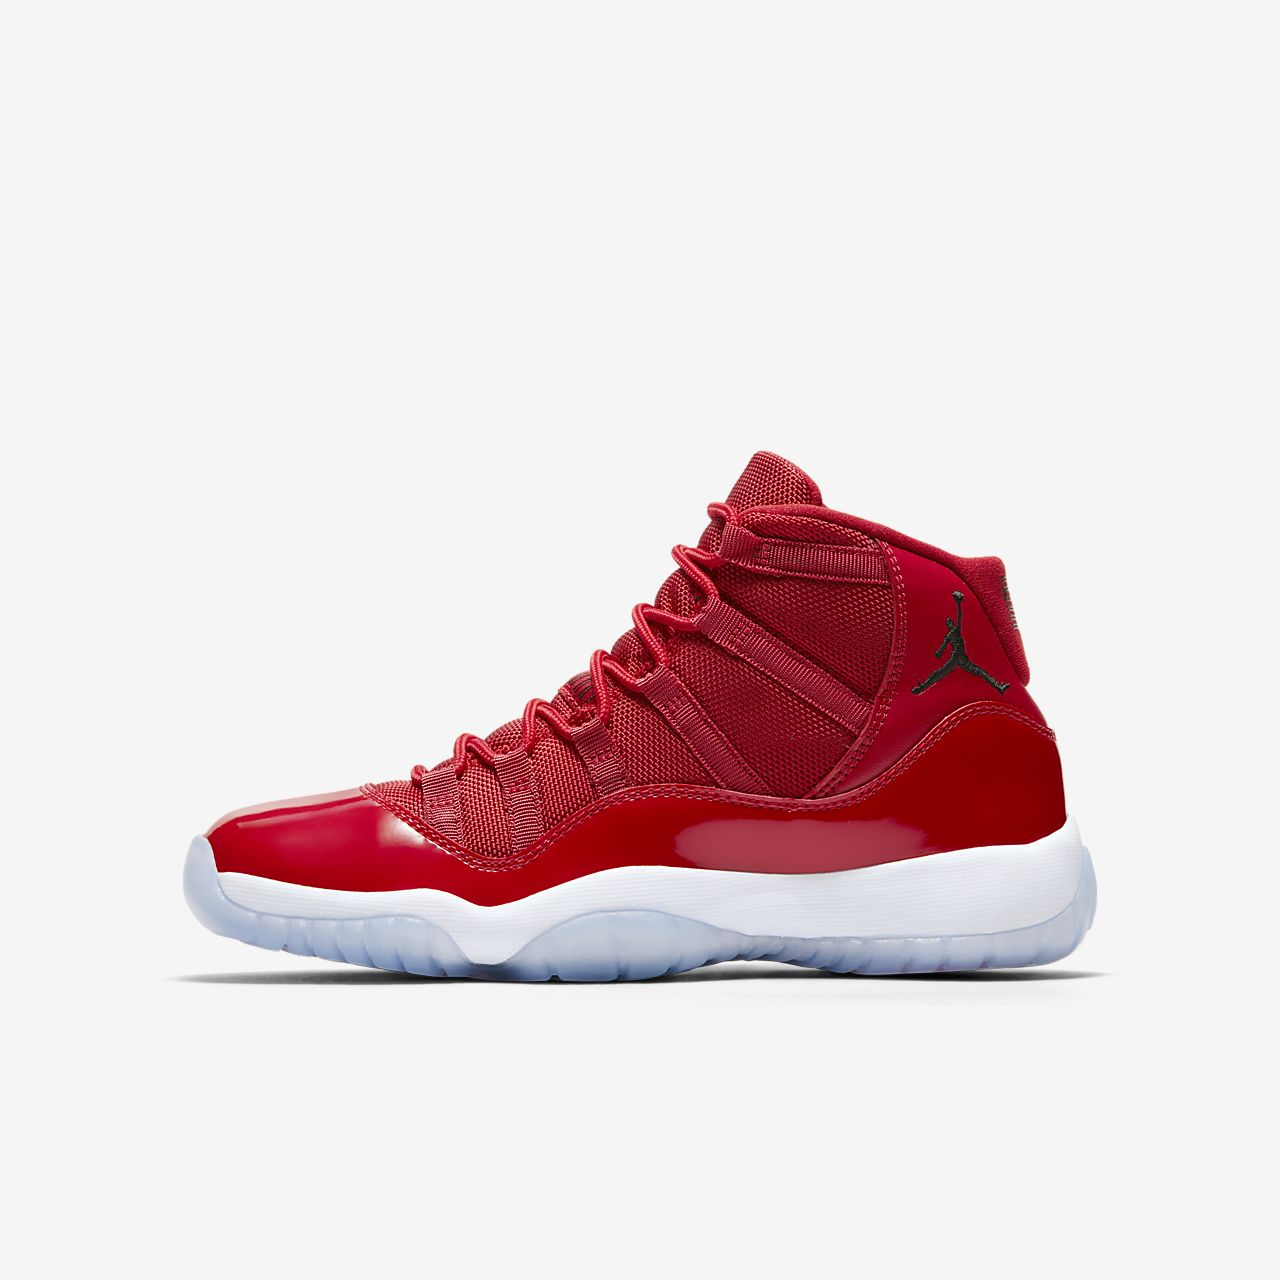 ... Air Jordan XI Retro Three-Quarter Older Kids' Shoe